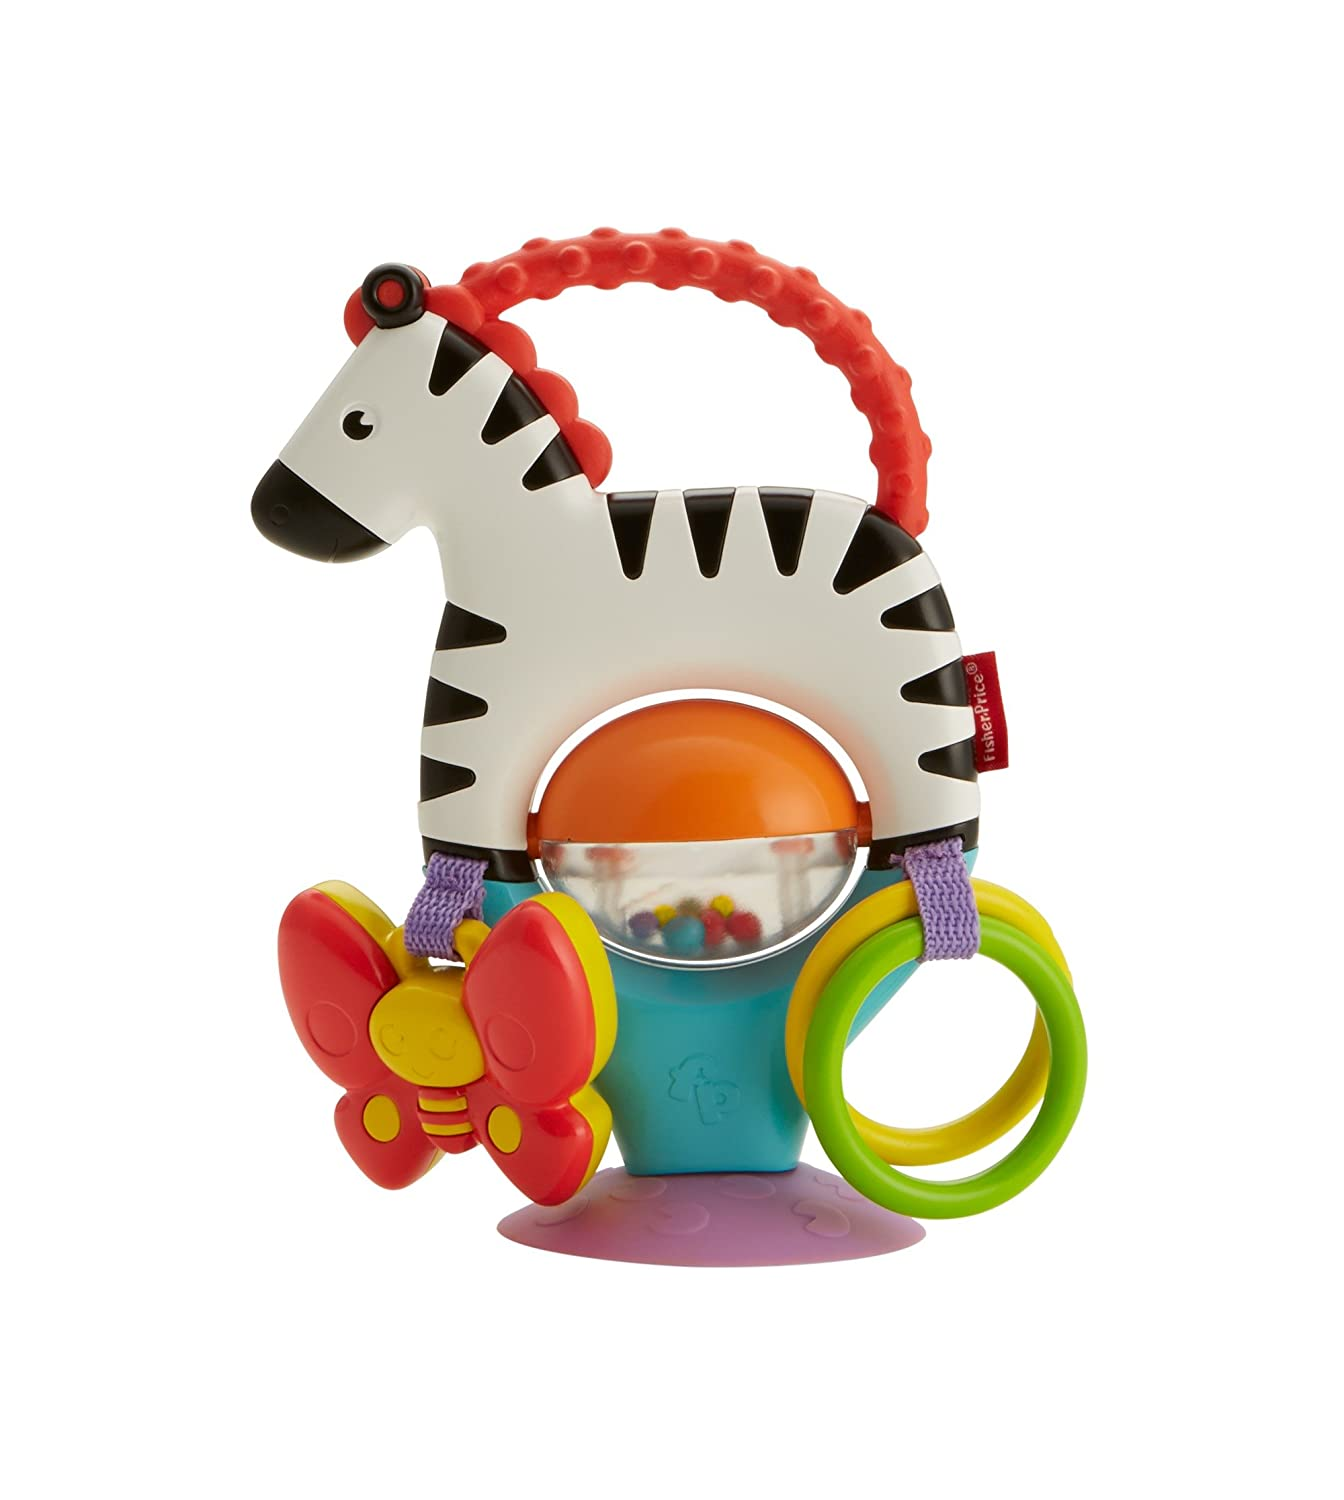 Fisher-Price Activity Zebra, New-born Sensory Toy with Suction Base with Colours, Textures and Sounds, 3 Months Plus Mattel FGJ11